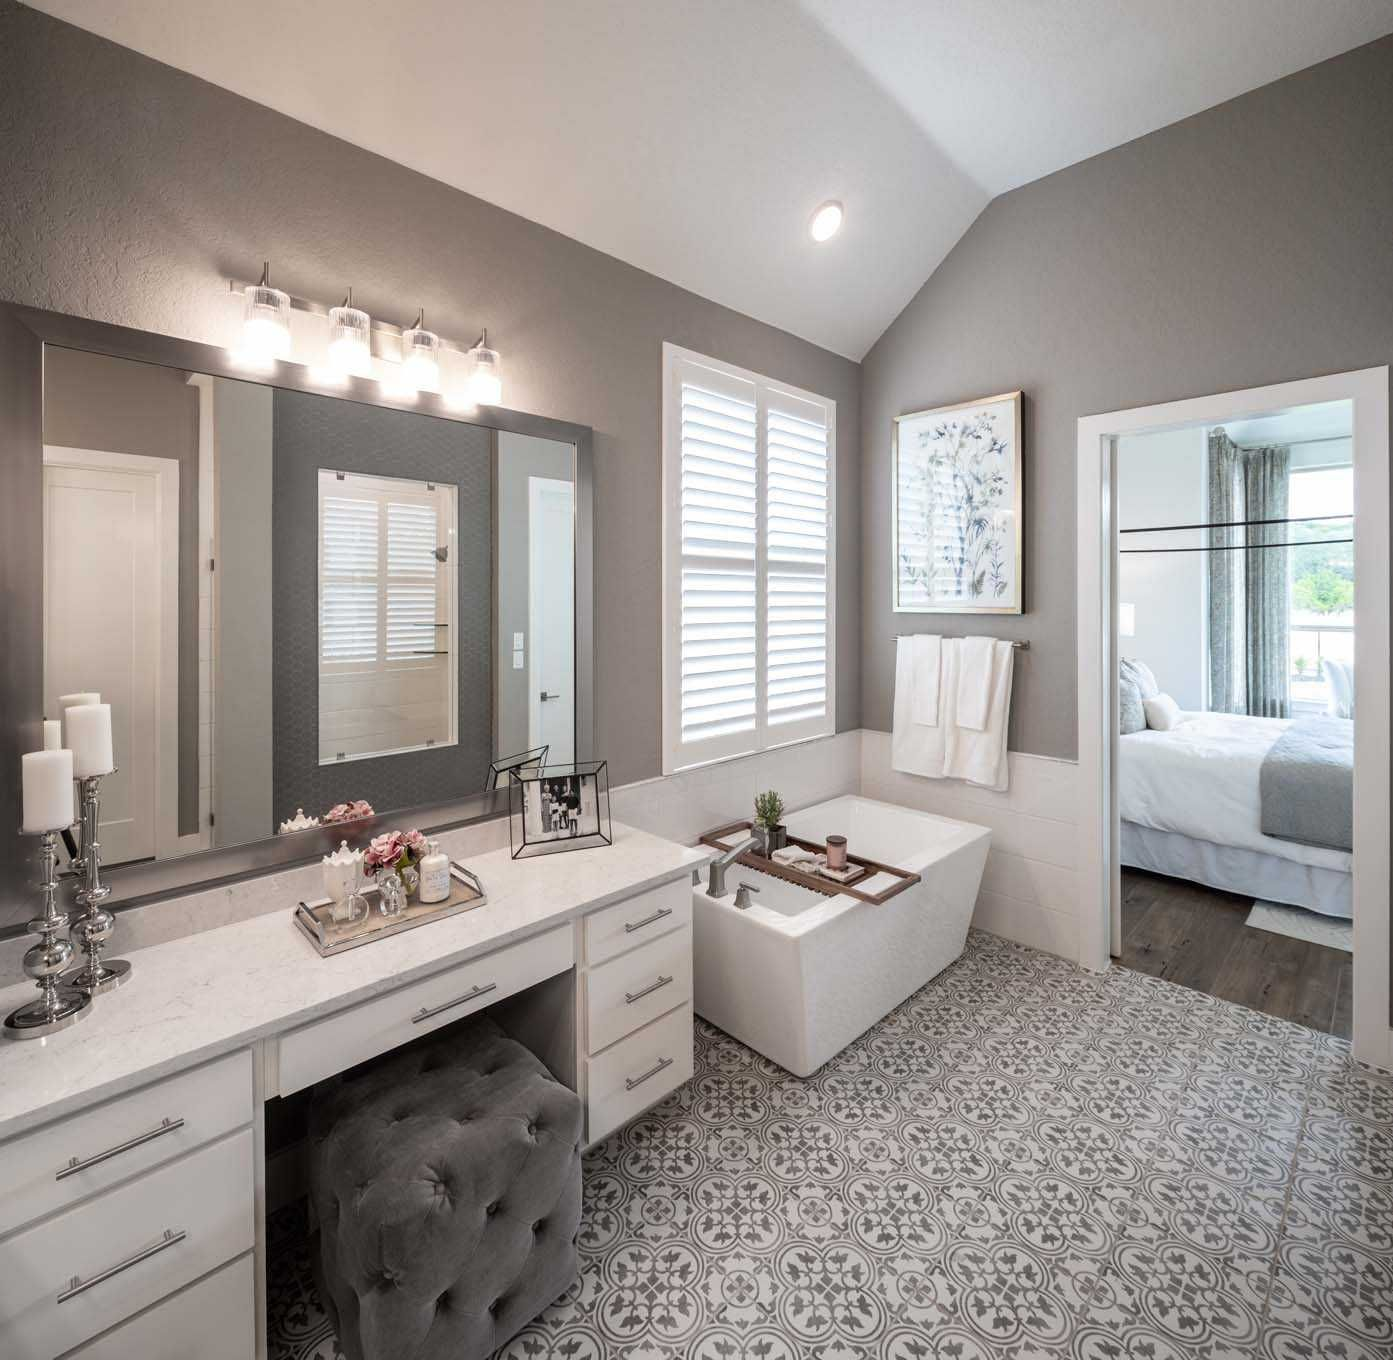 Master Bathroom In Highland Homes 216 Plan At 17906 Cantera Court